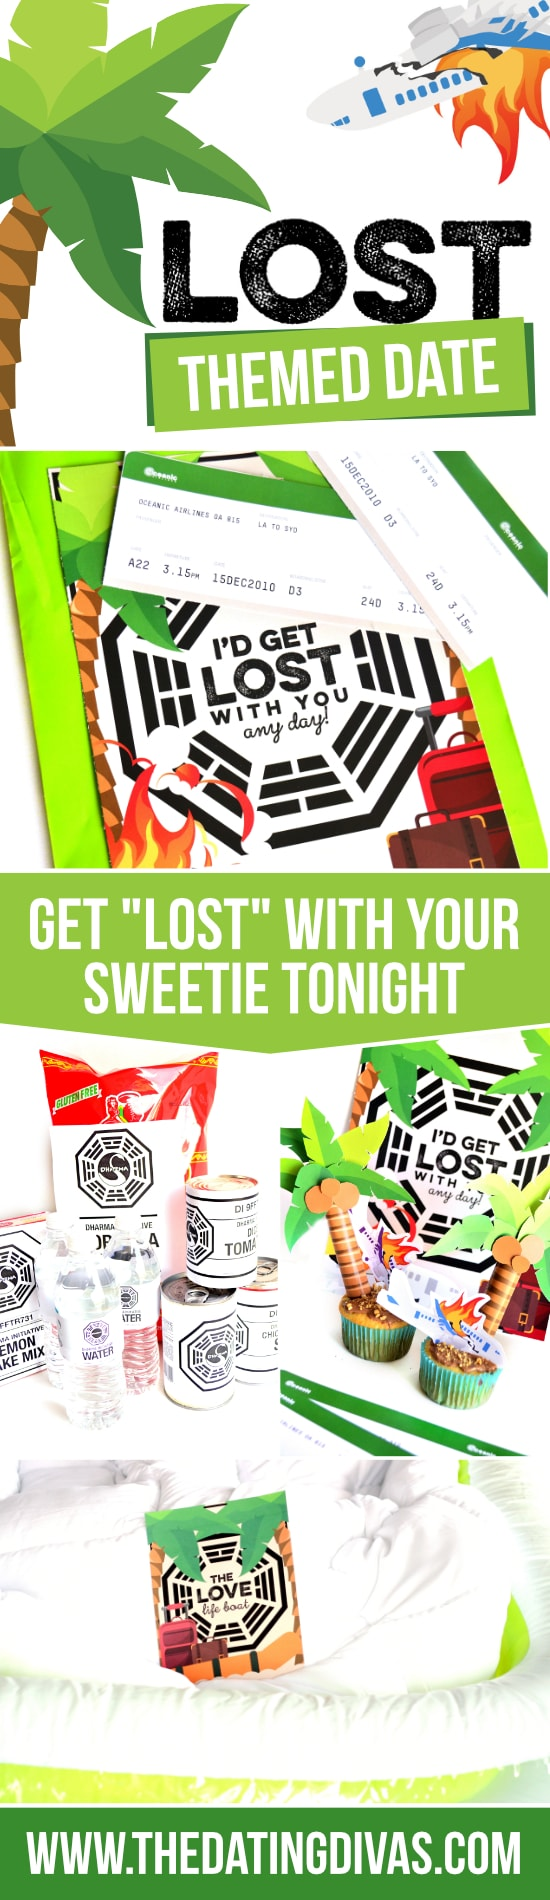 Take your love of Lost up a notch with this themed date!